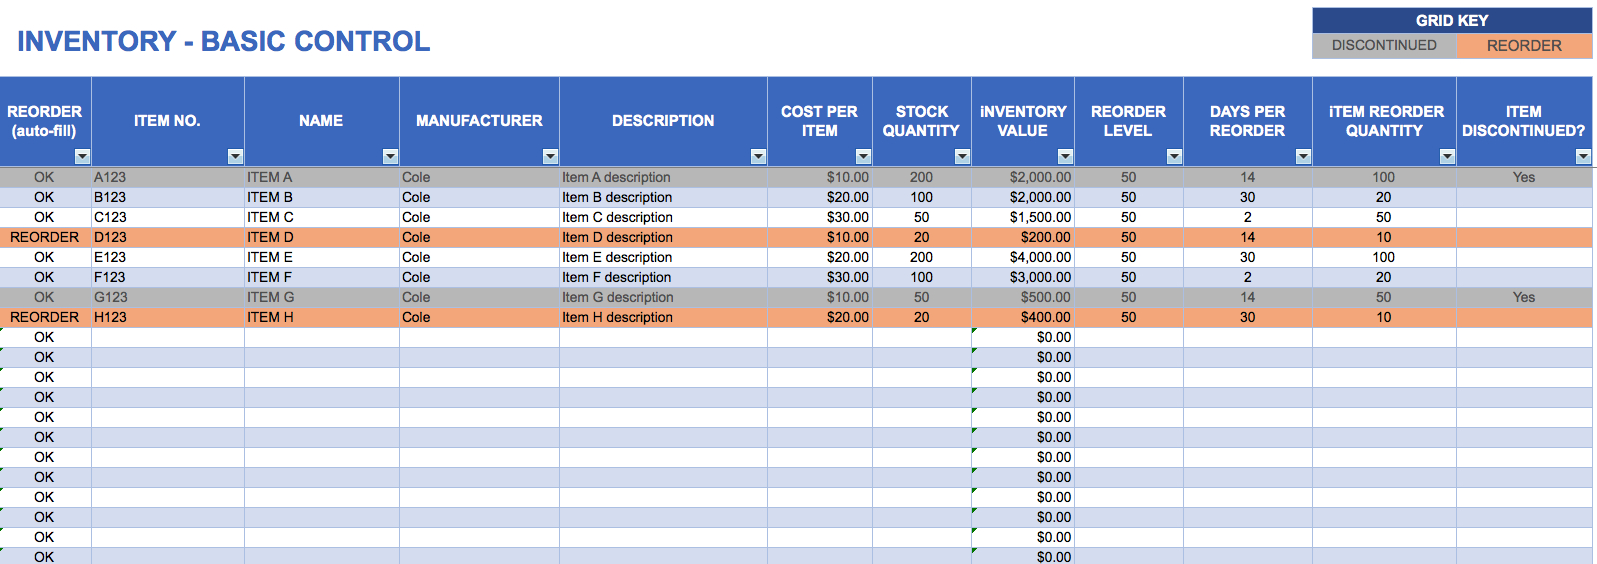 Excel Inventory Tracking Spreadsheet Template   Demir.iso Consulting.co Also Inventory Control Spreadsheet Template